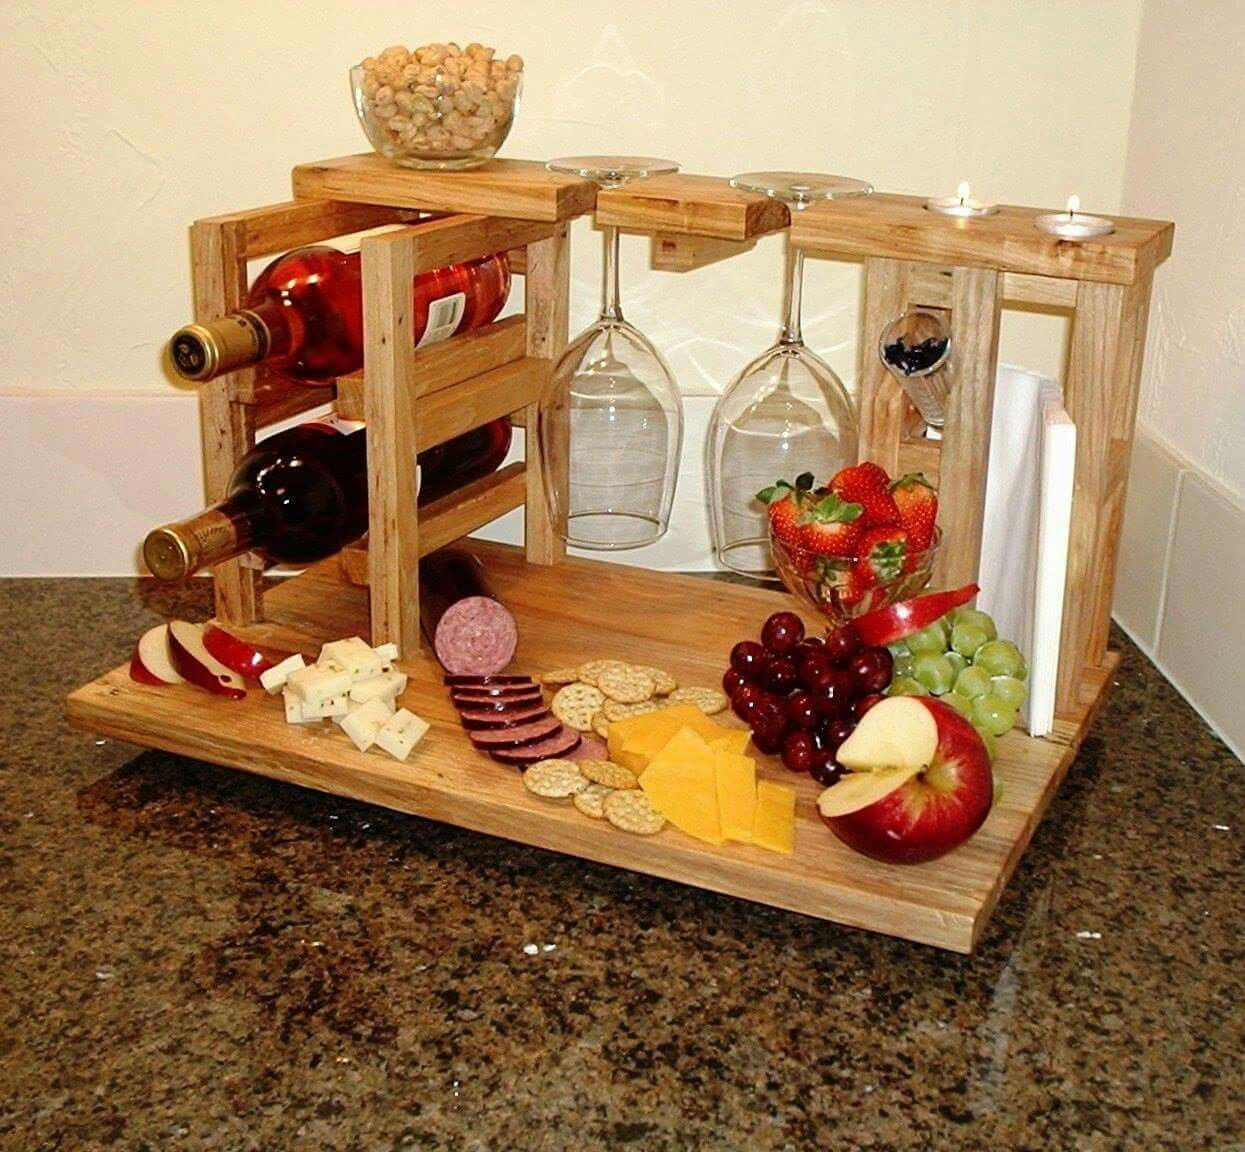 Wine Holder Ideas Beautiful Wine Holder Charcuterie Board These Would Make